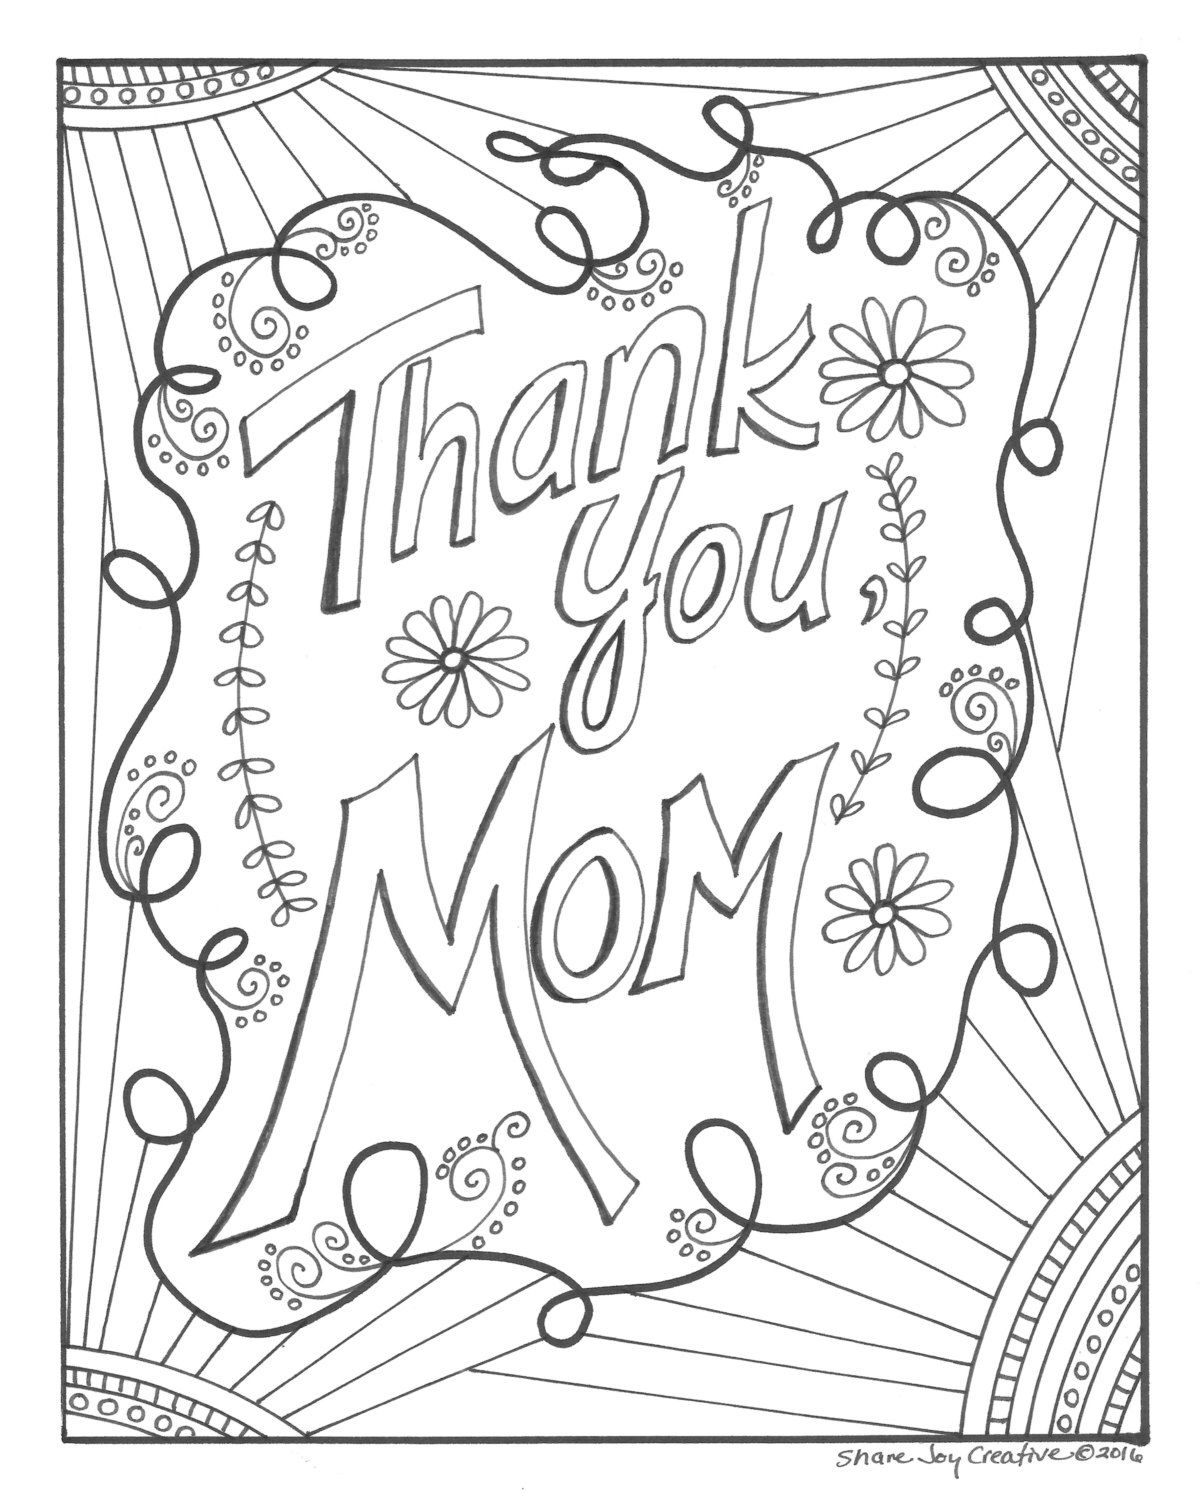 Thank You Mom Coloring Page Printable Coloring Page Etsy In 2020 Mothers Day Coloring Pages Mom Coloring Pages Halloween Coloring Pages